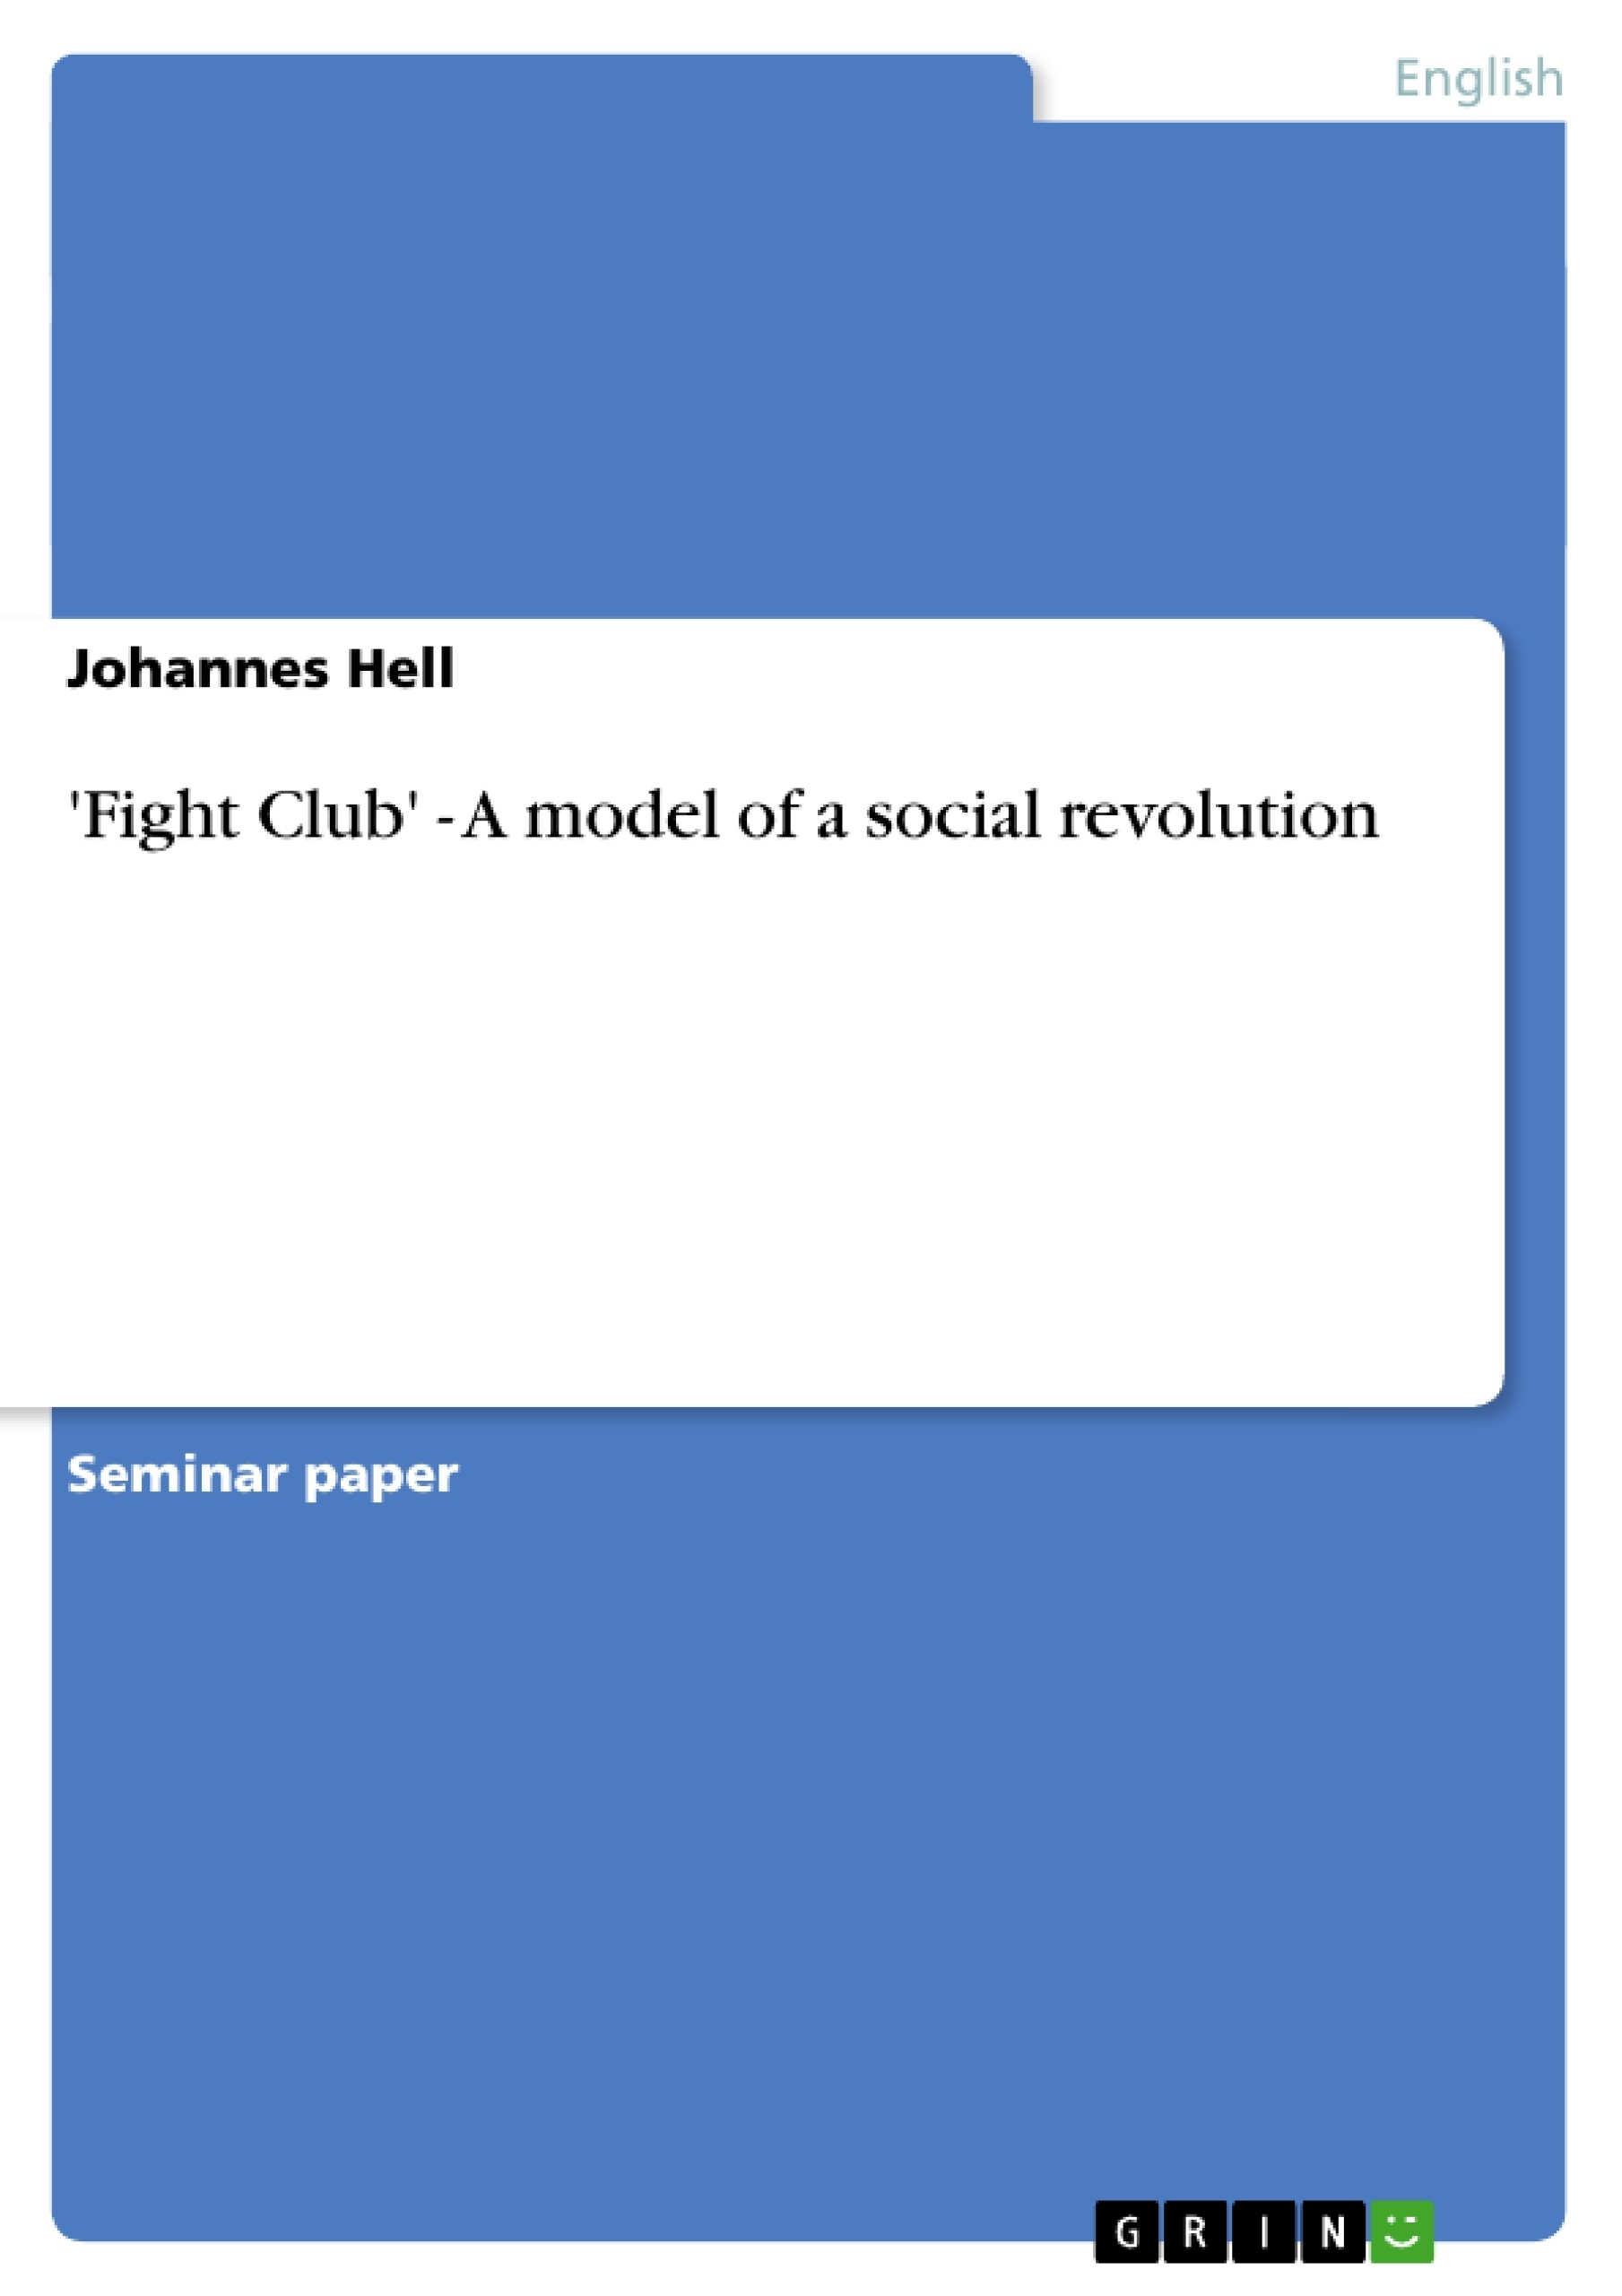 Title: 'Fight Club' - A model of a social revolution